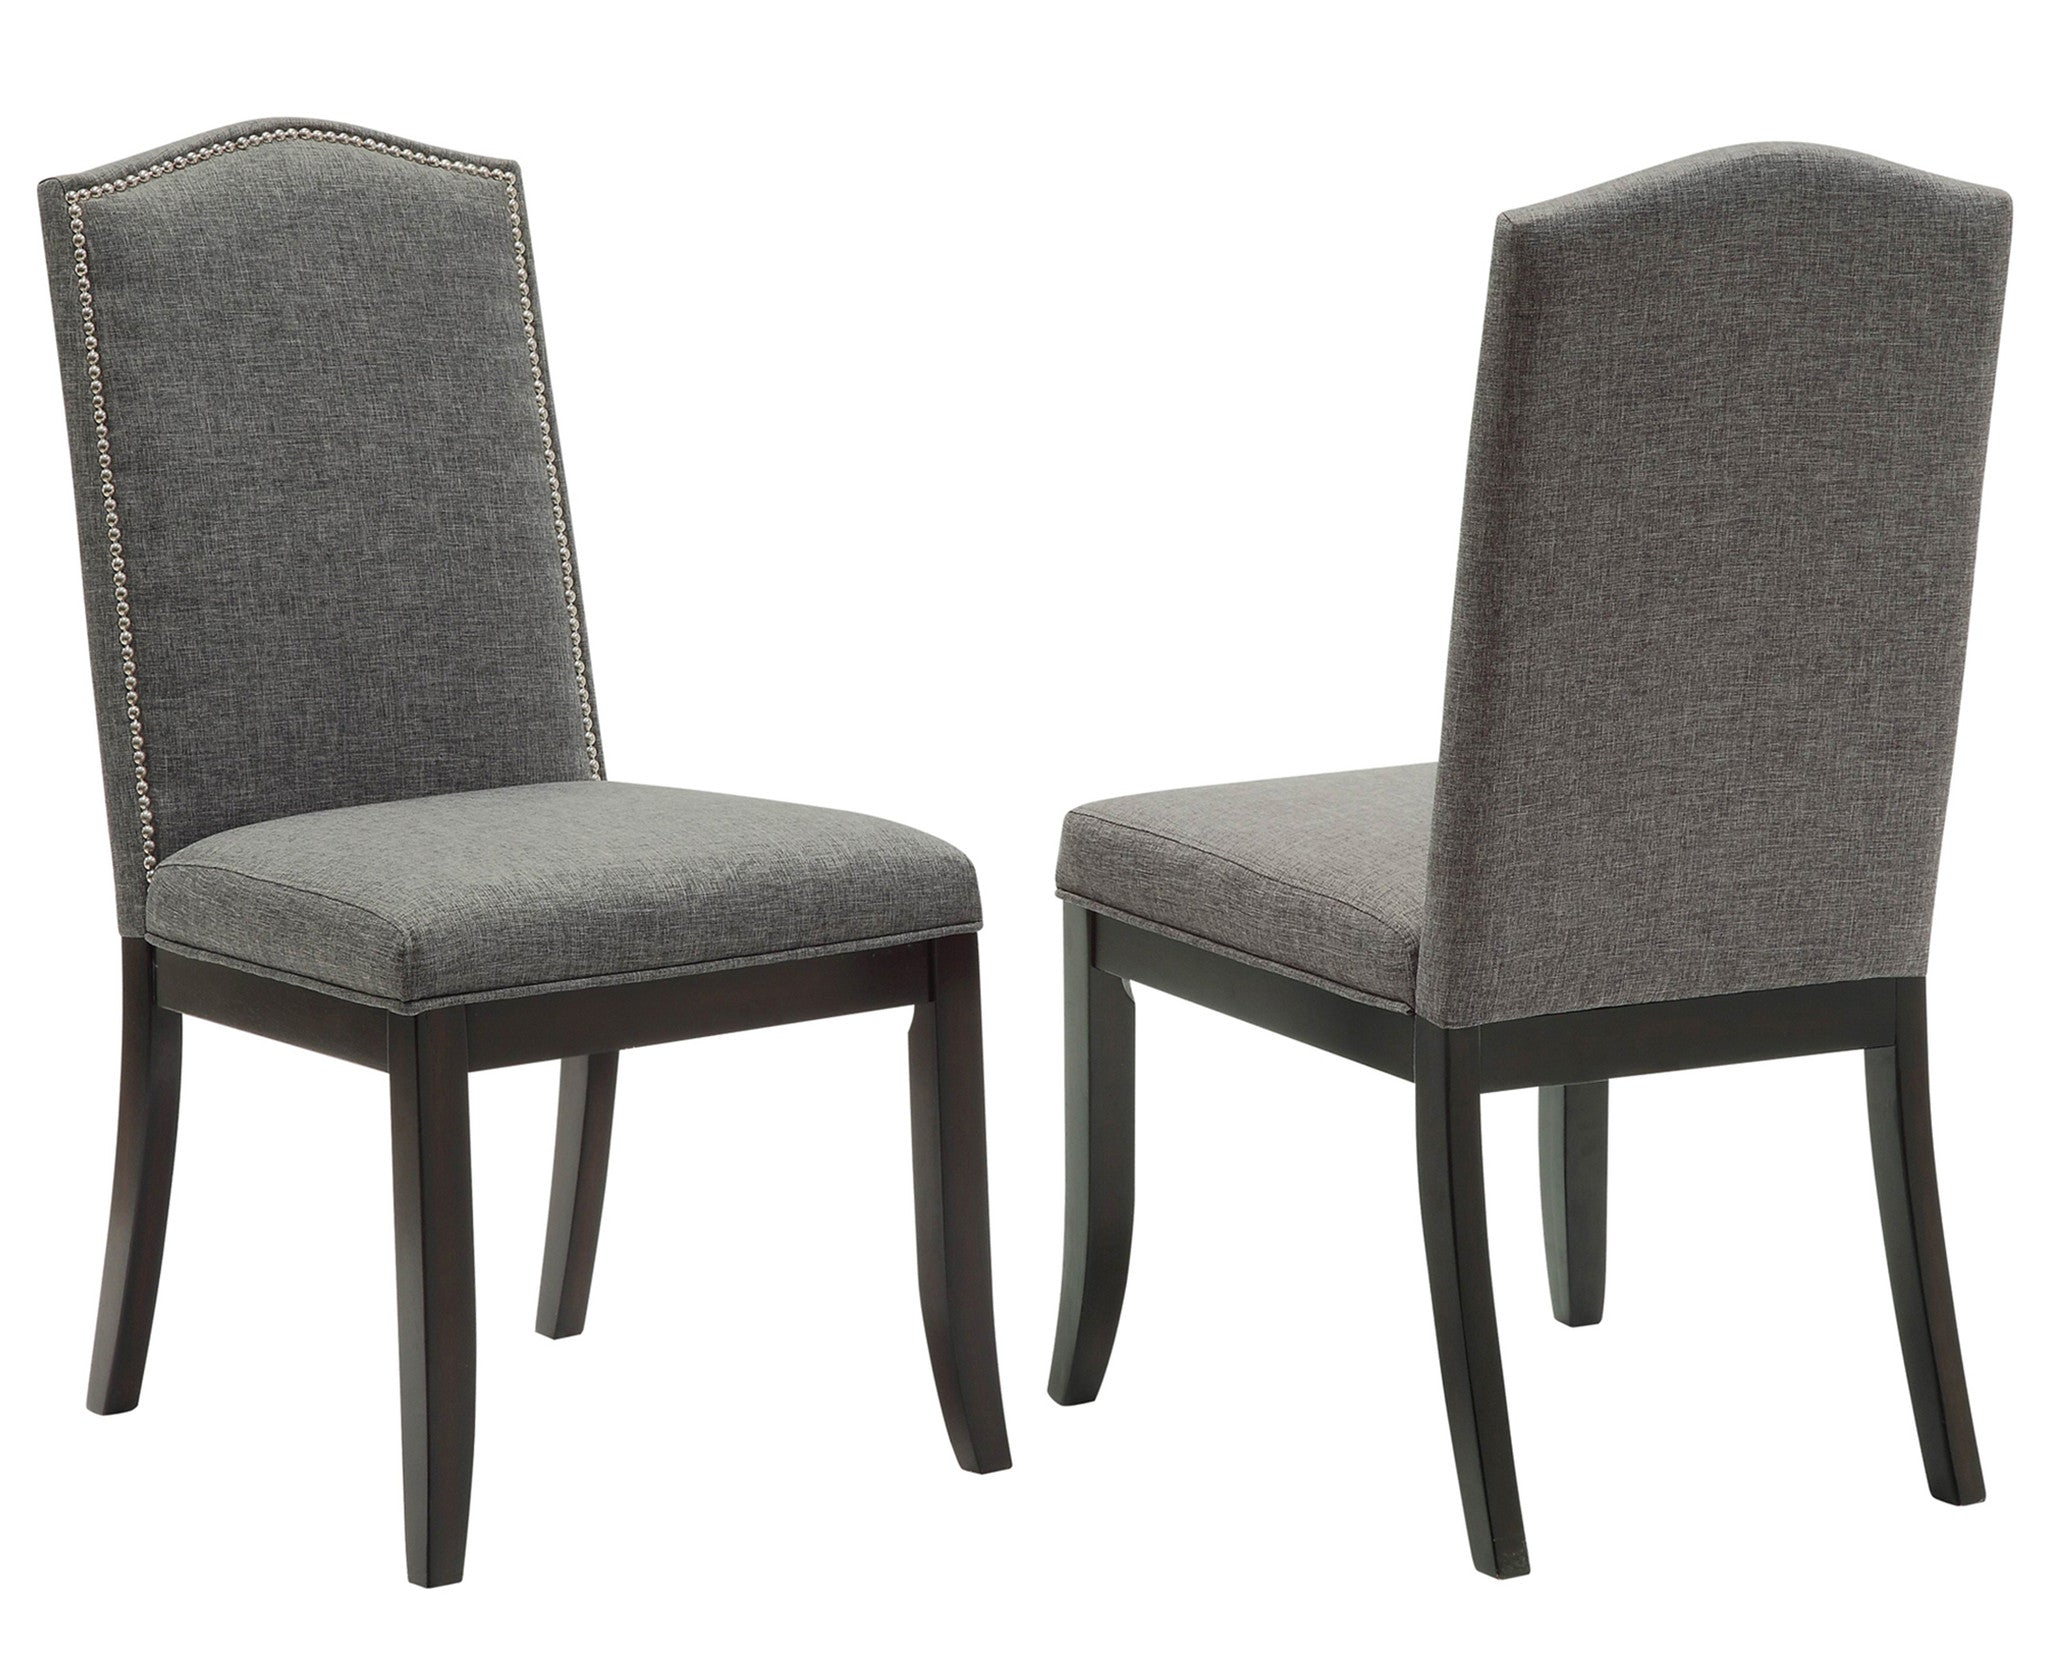 Jazz side chair - pkg of 2